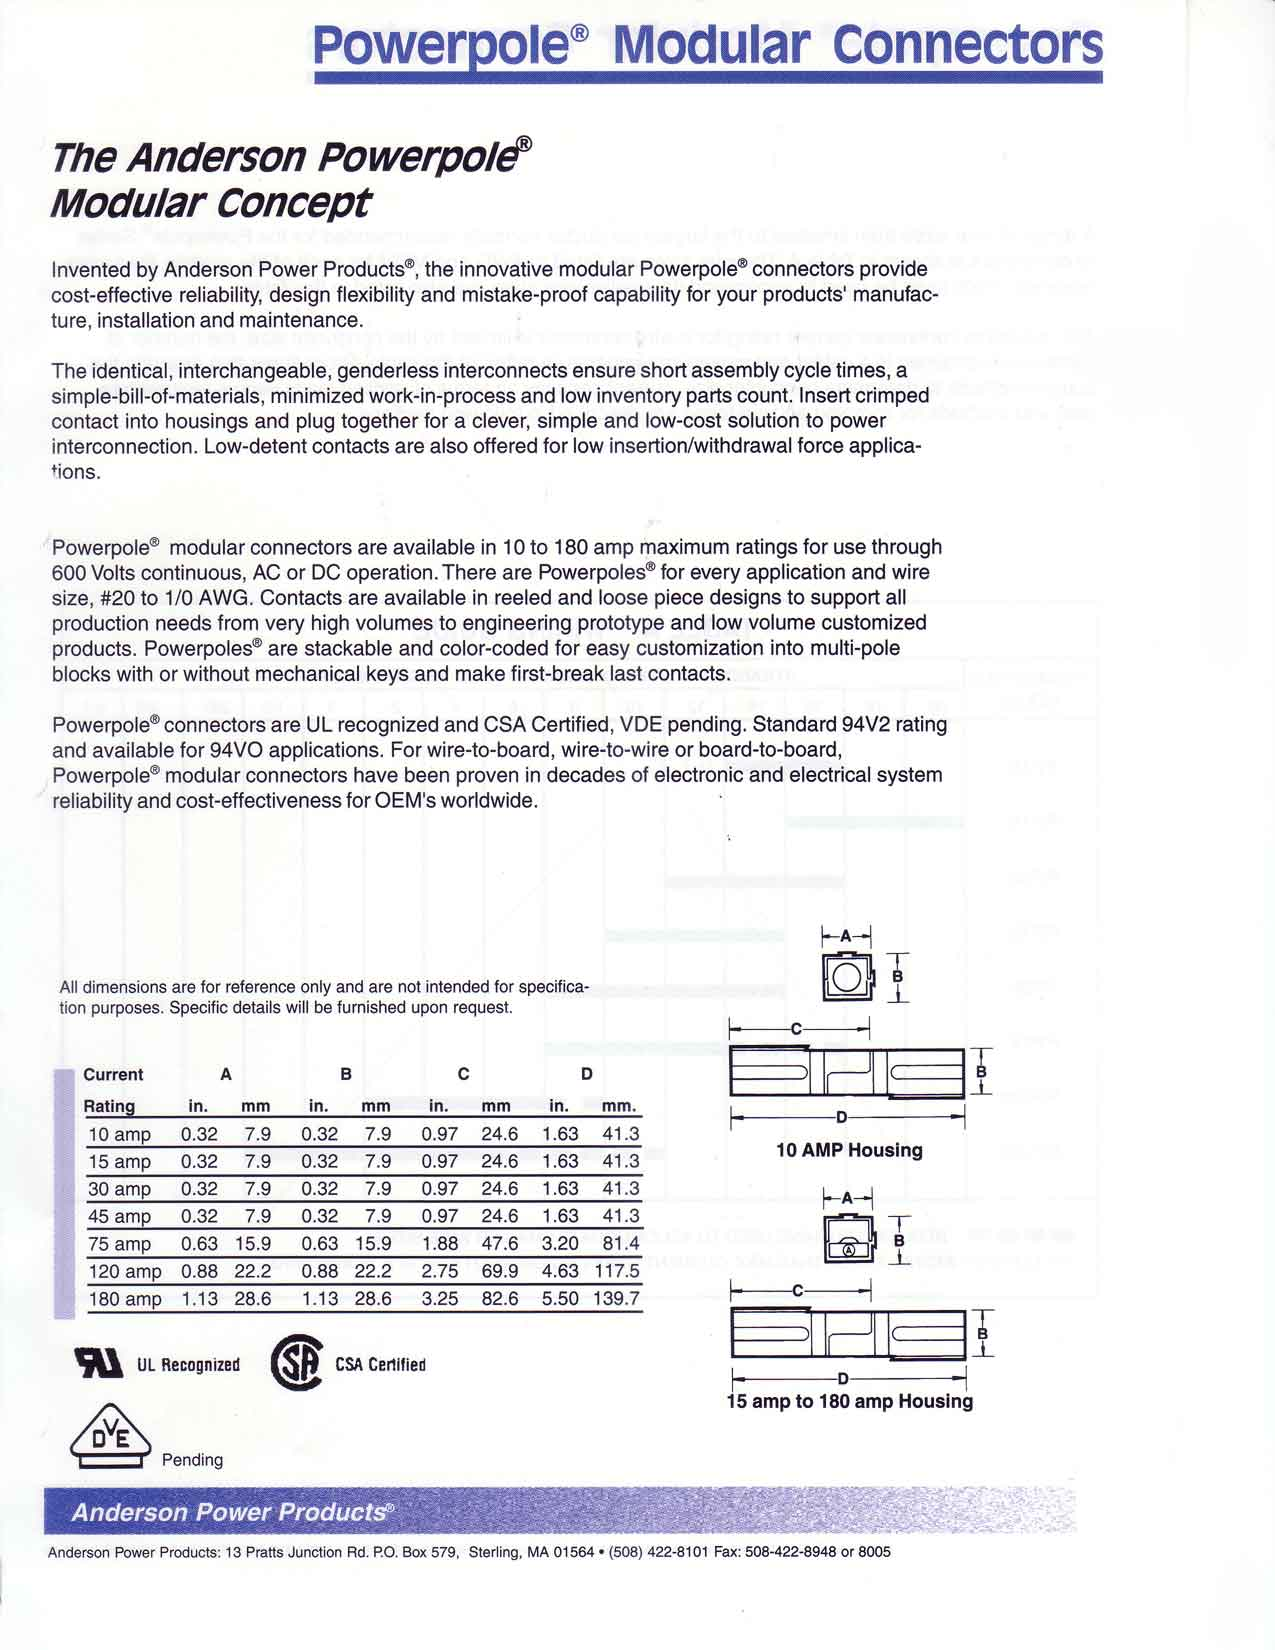 Powerpole Modular Connectors, Anderson Power Products